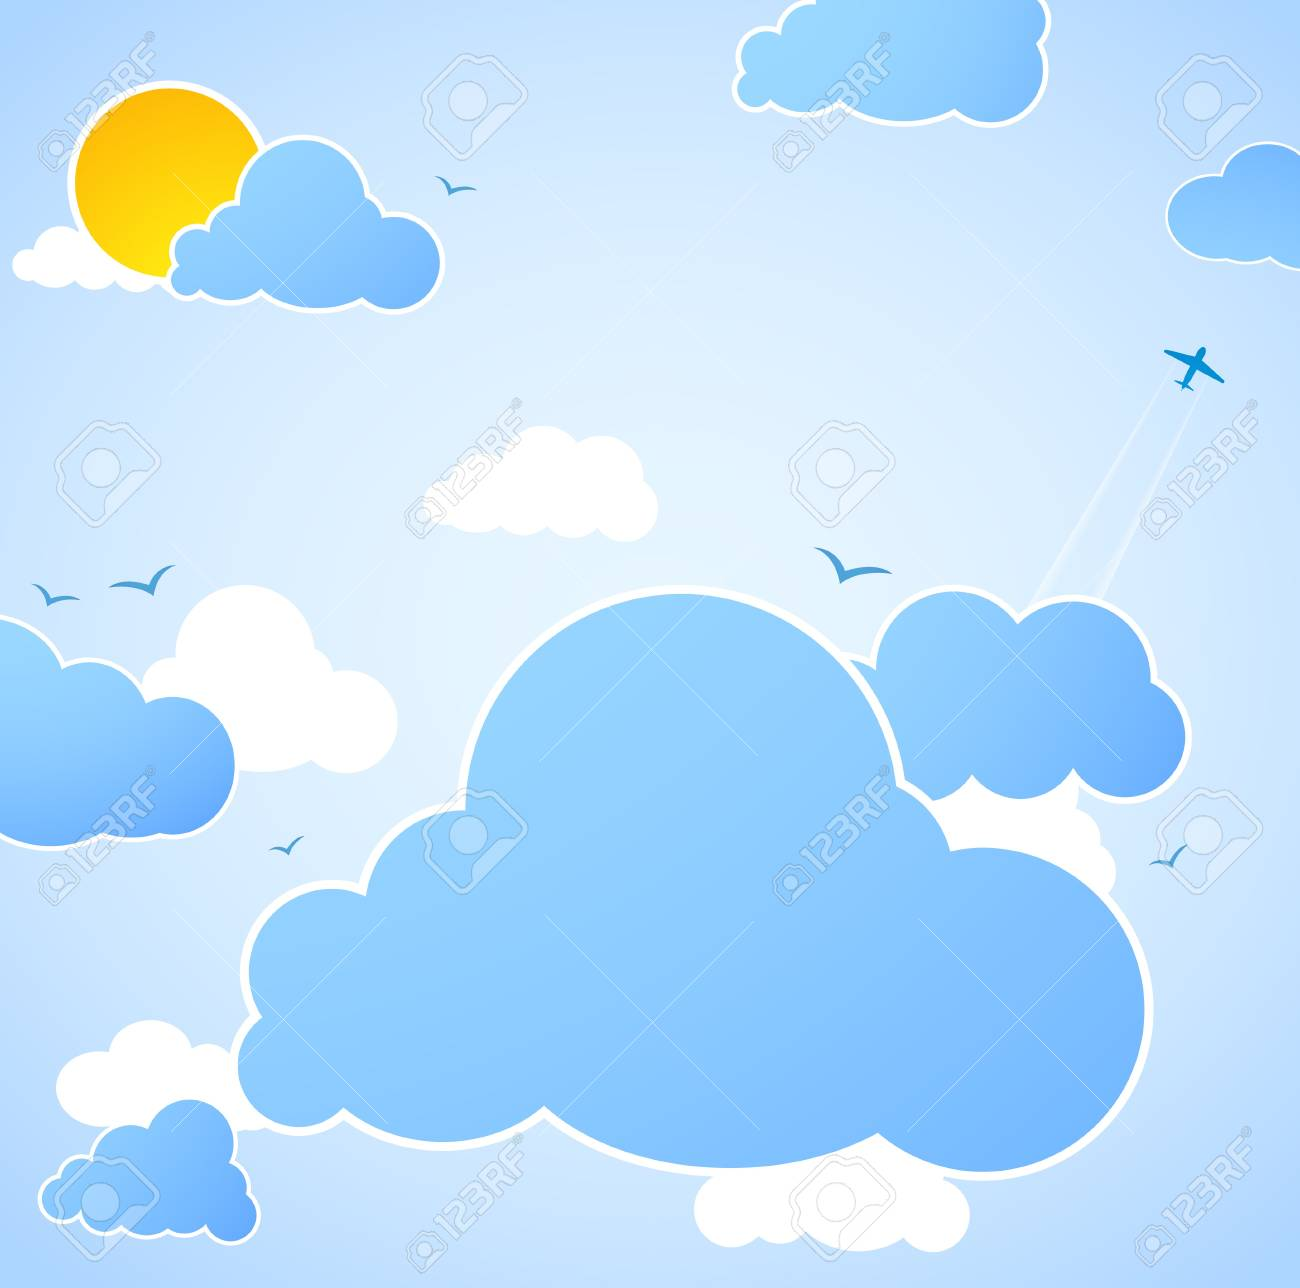 Good weather. Blue sky background. Stock Vector - 20833618